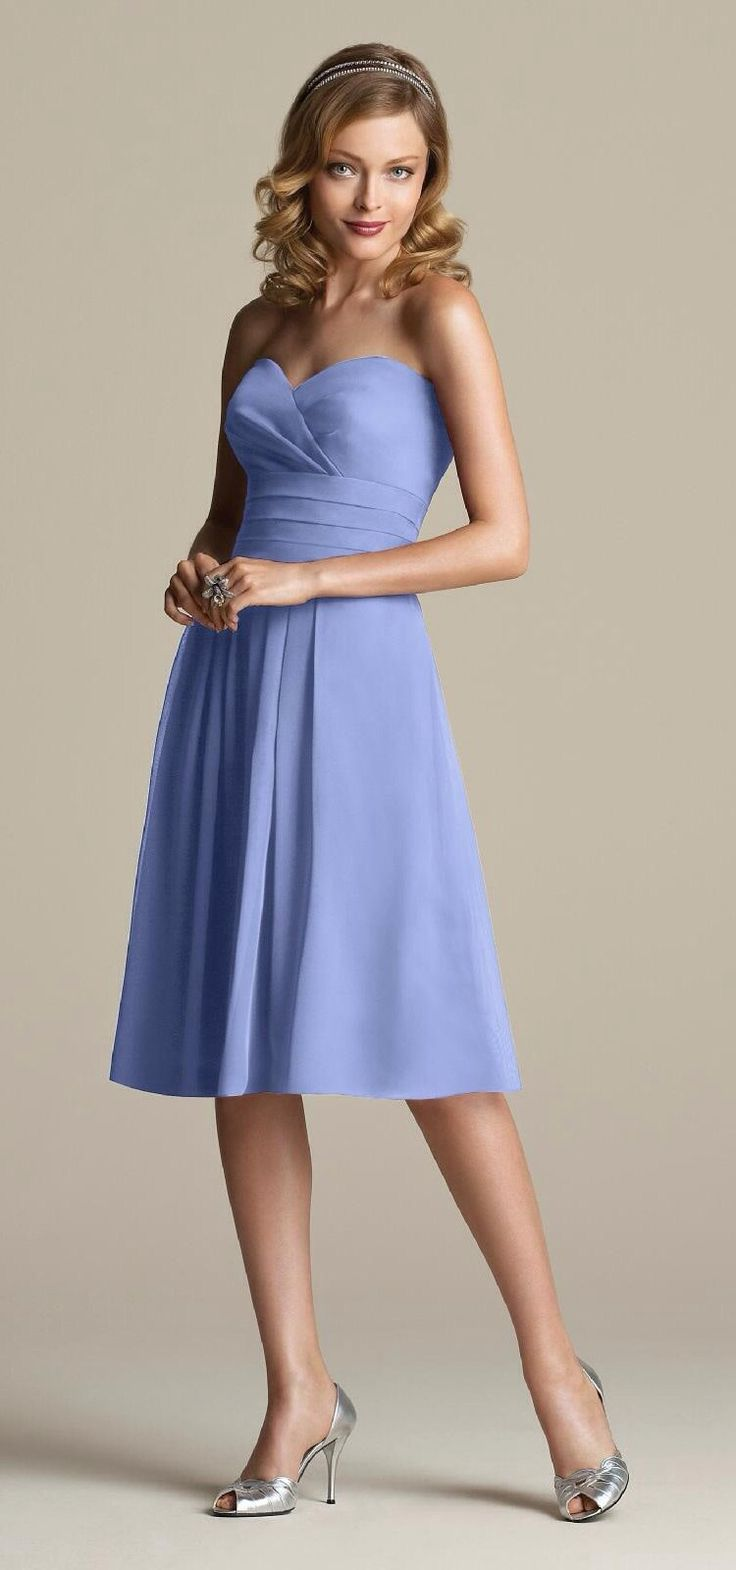 Periwinkle chiffon bridesmaid dresses great ideas for fashion 51 best images about periwinkle blue on pinterest love periwinkle bridesmaid dresses ombrellifo Images